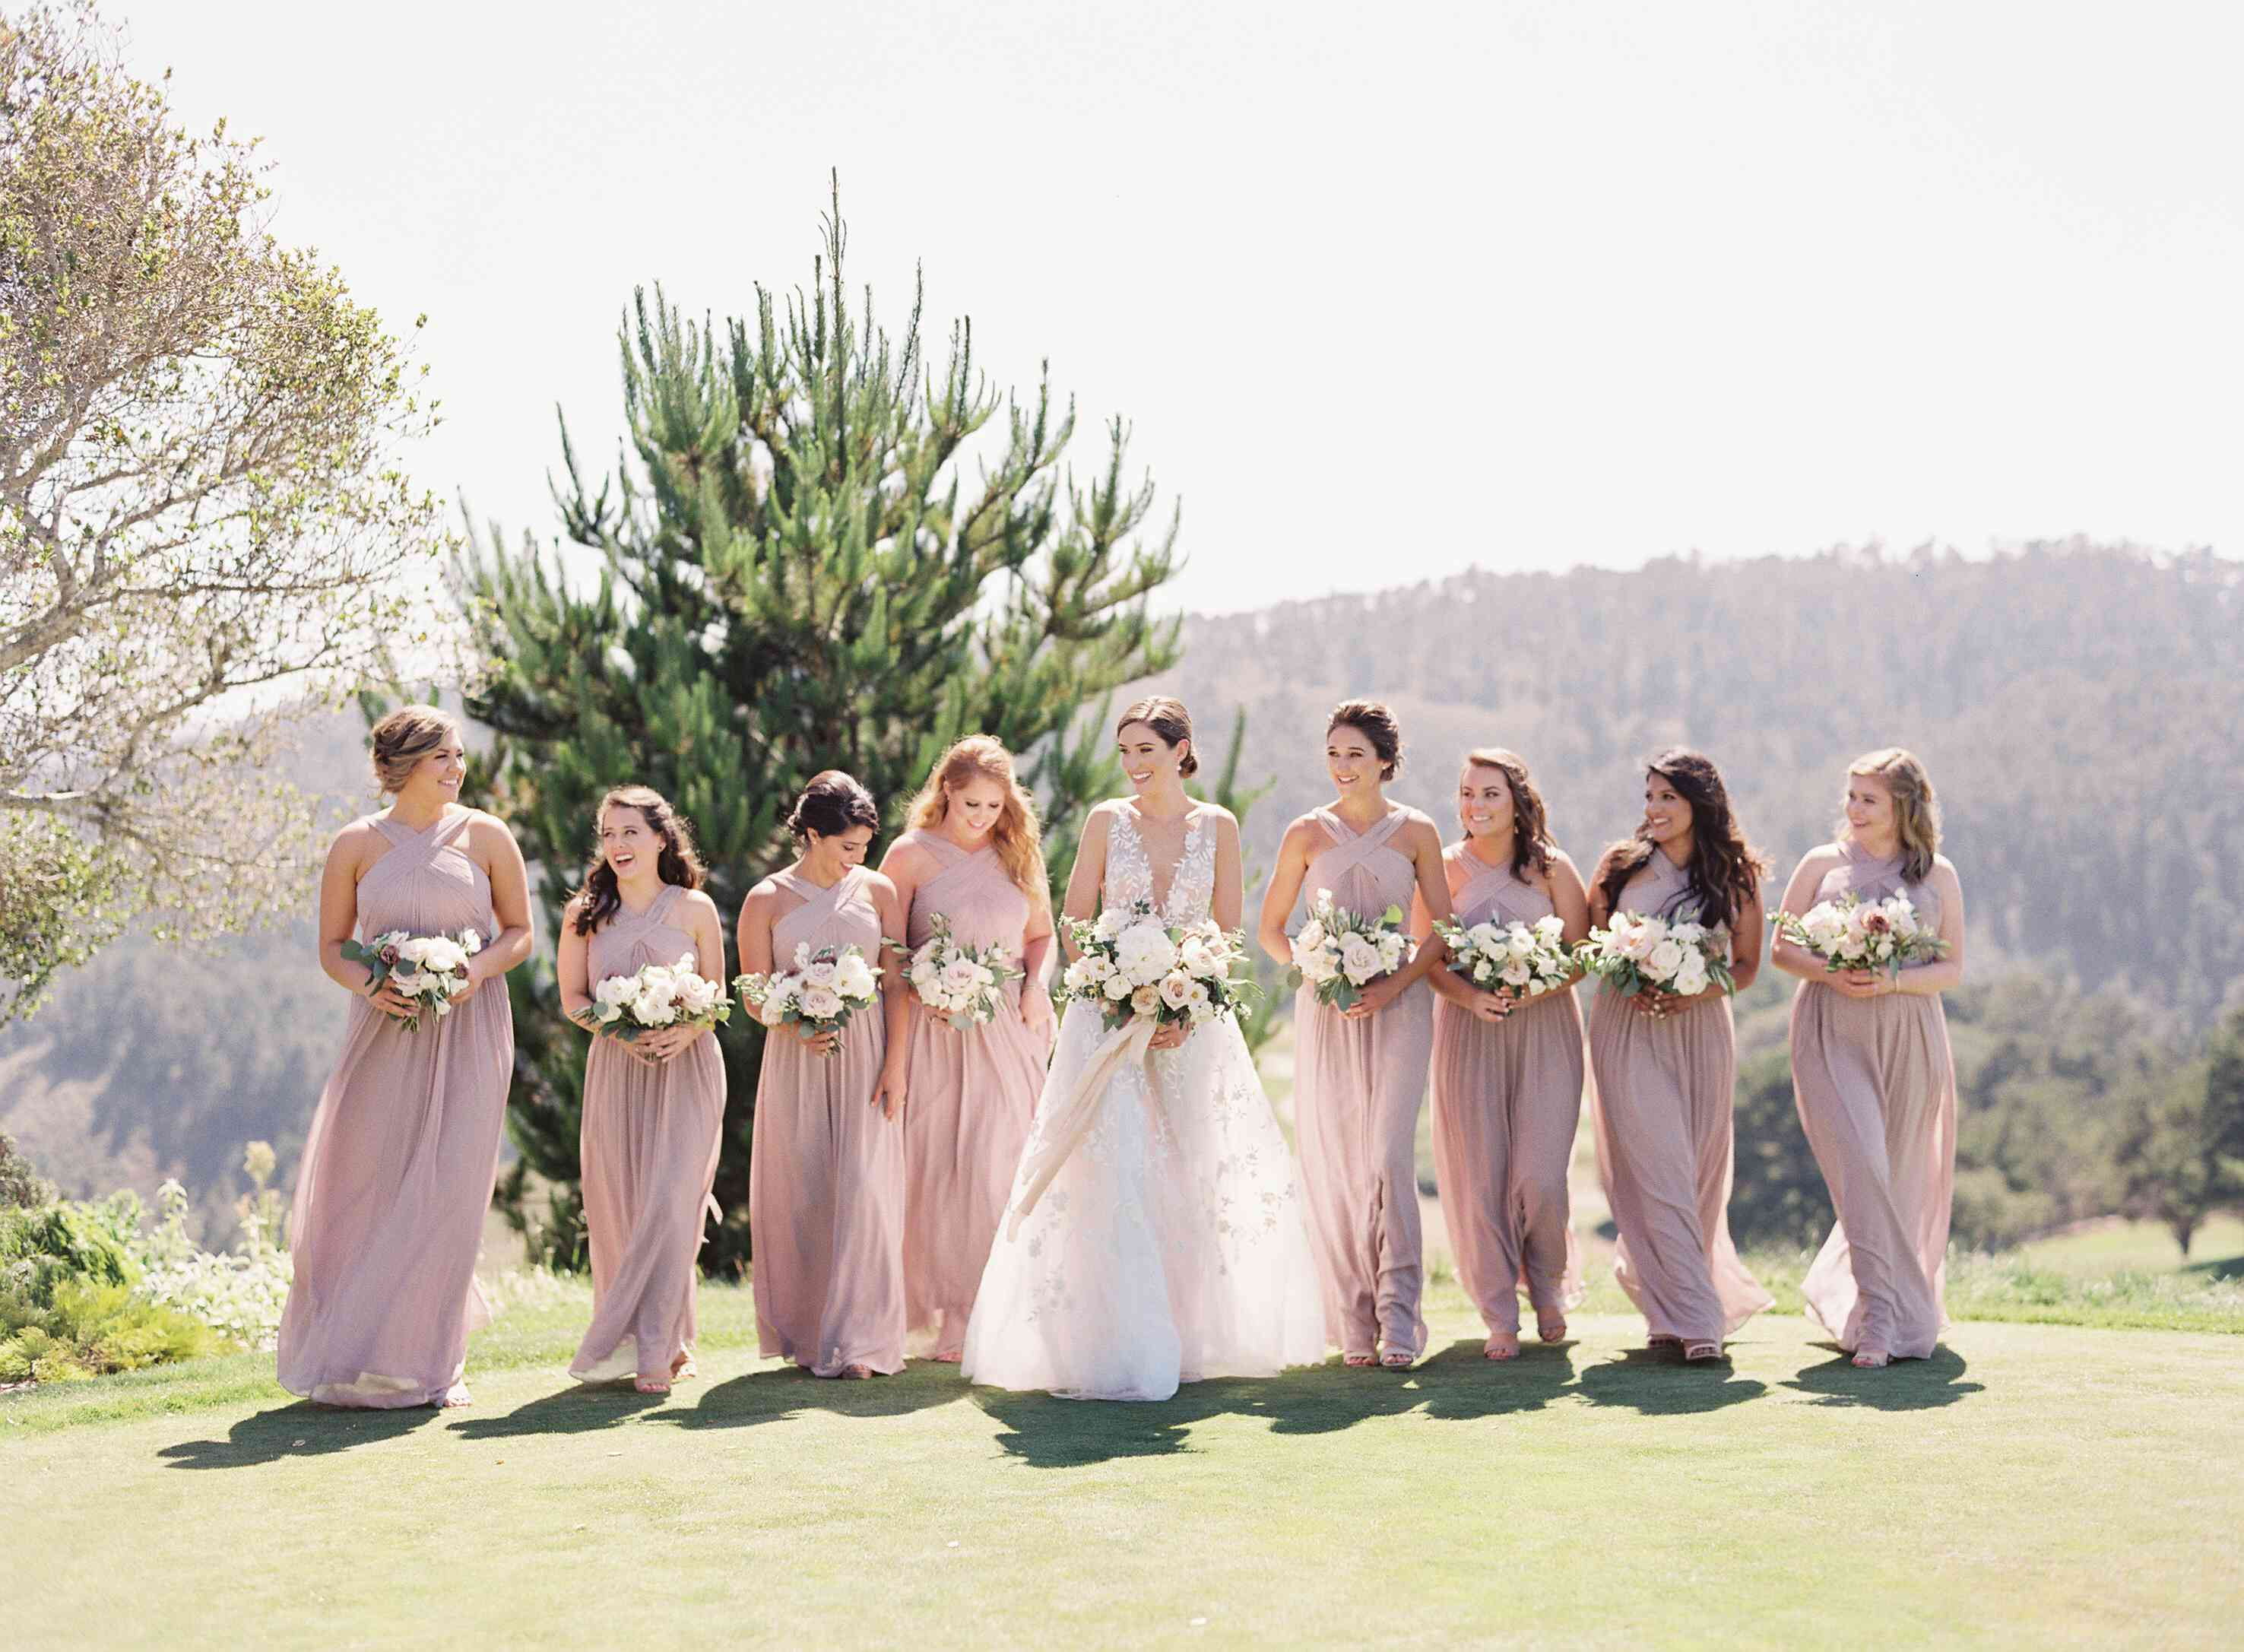 bride with bridal party in blush dresses